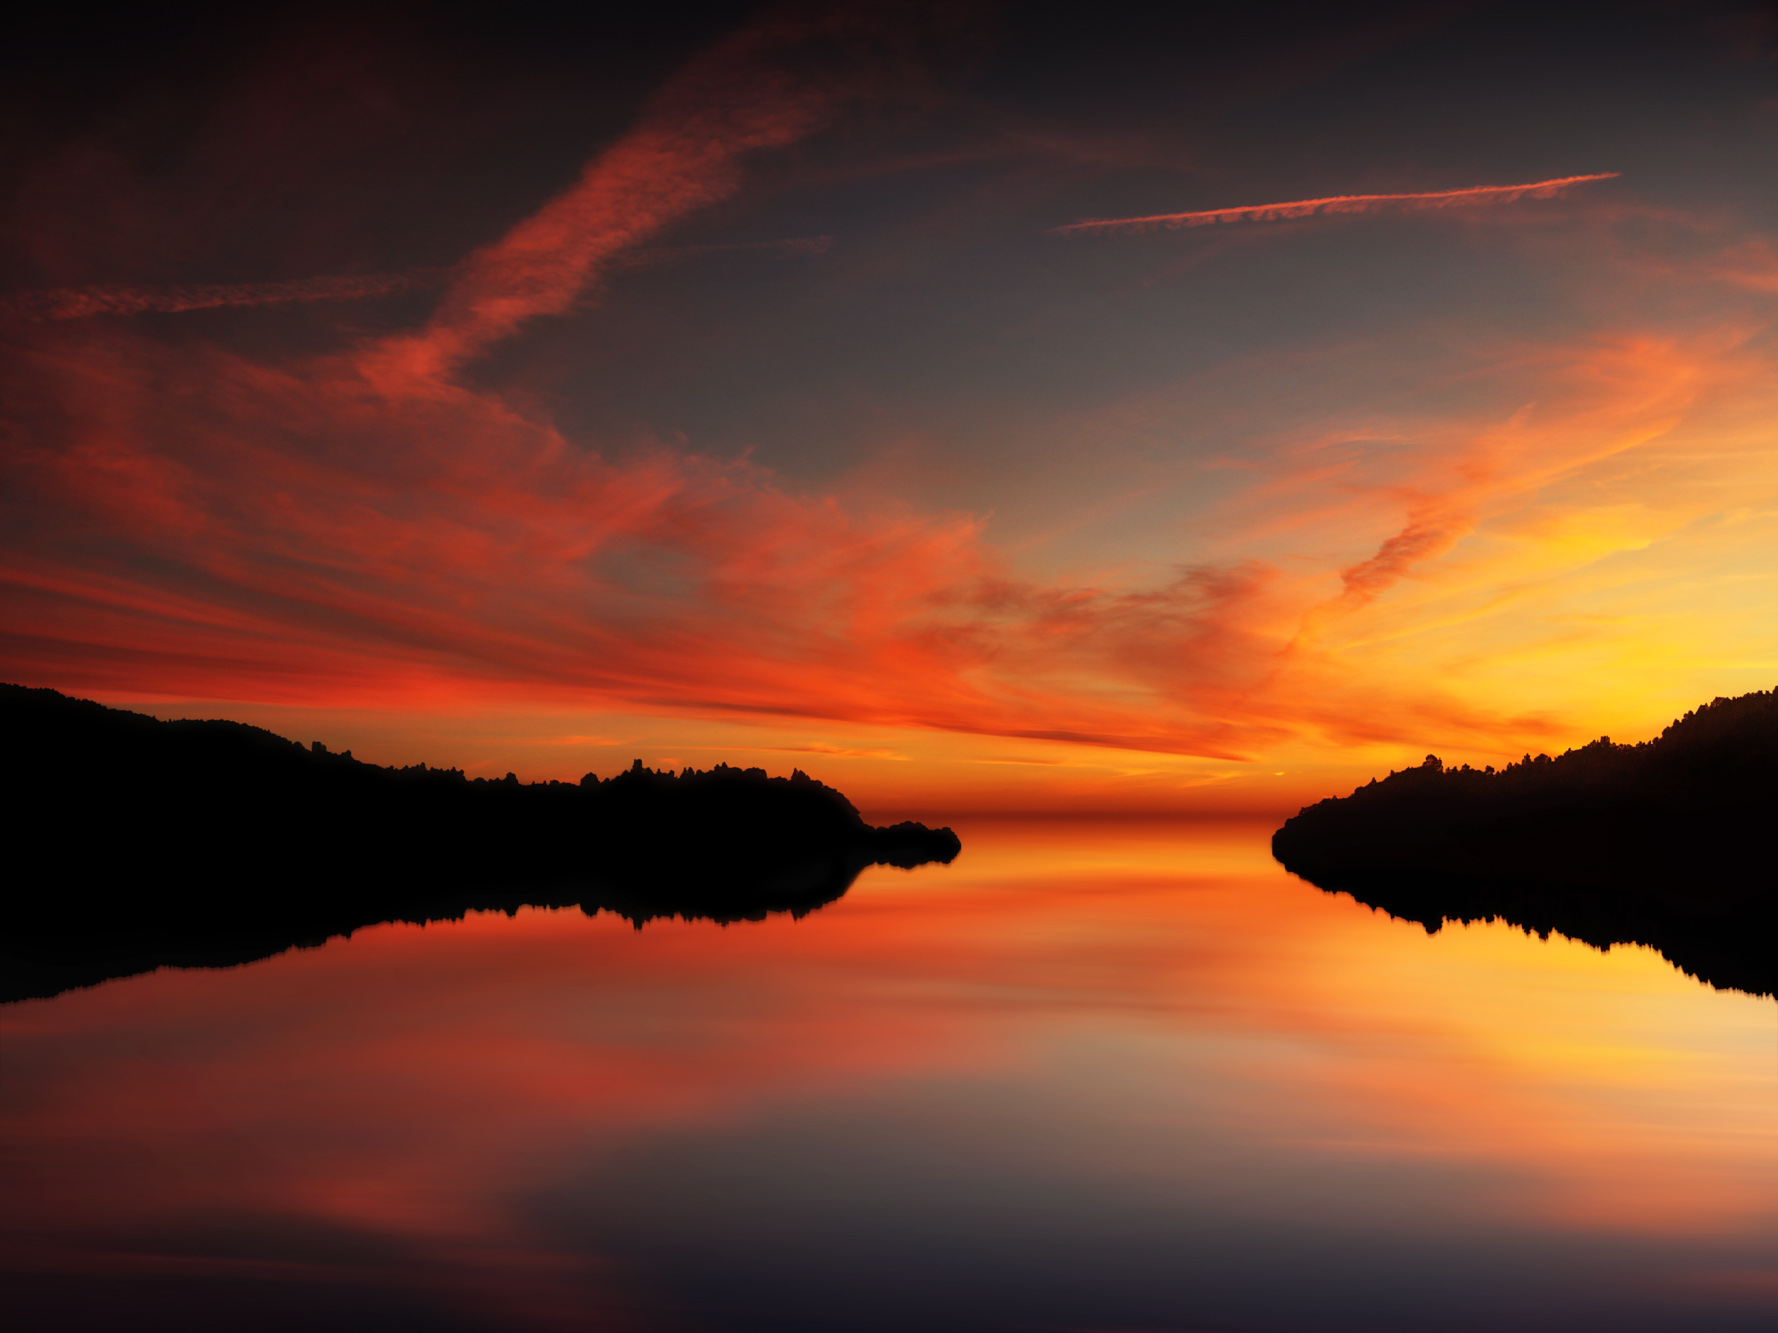 antonyz long exposure landscape photograph of sunset over reflections in a beautiful lake